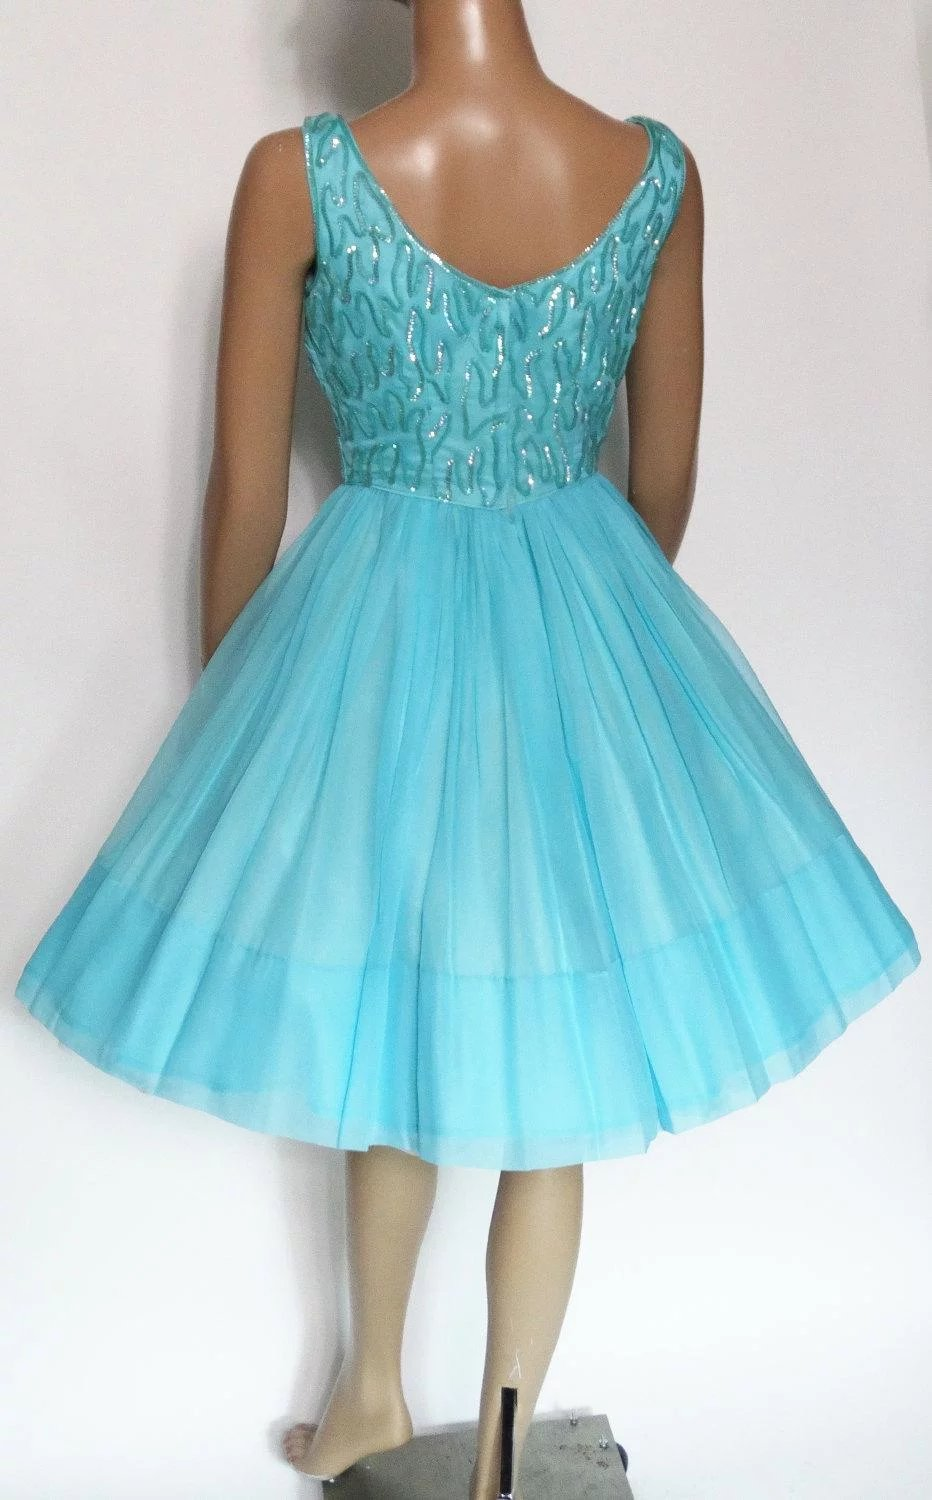 Vintage 1950s Dress |Aqua | Sequins | Jr. Theme | 50s Dress | Full ...